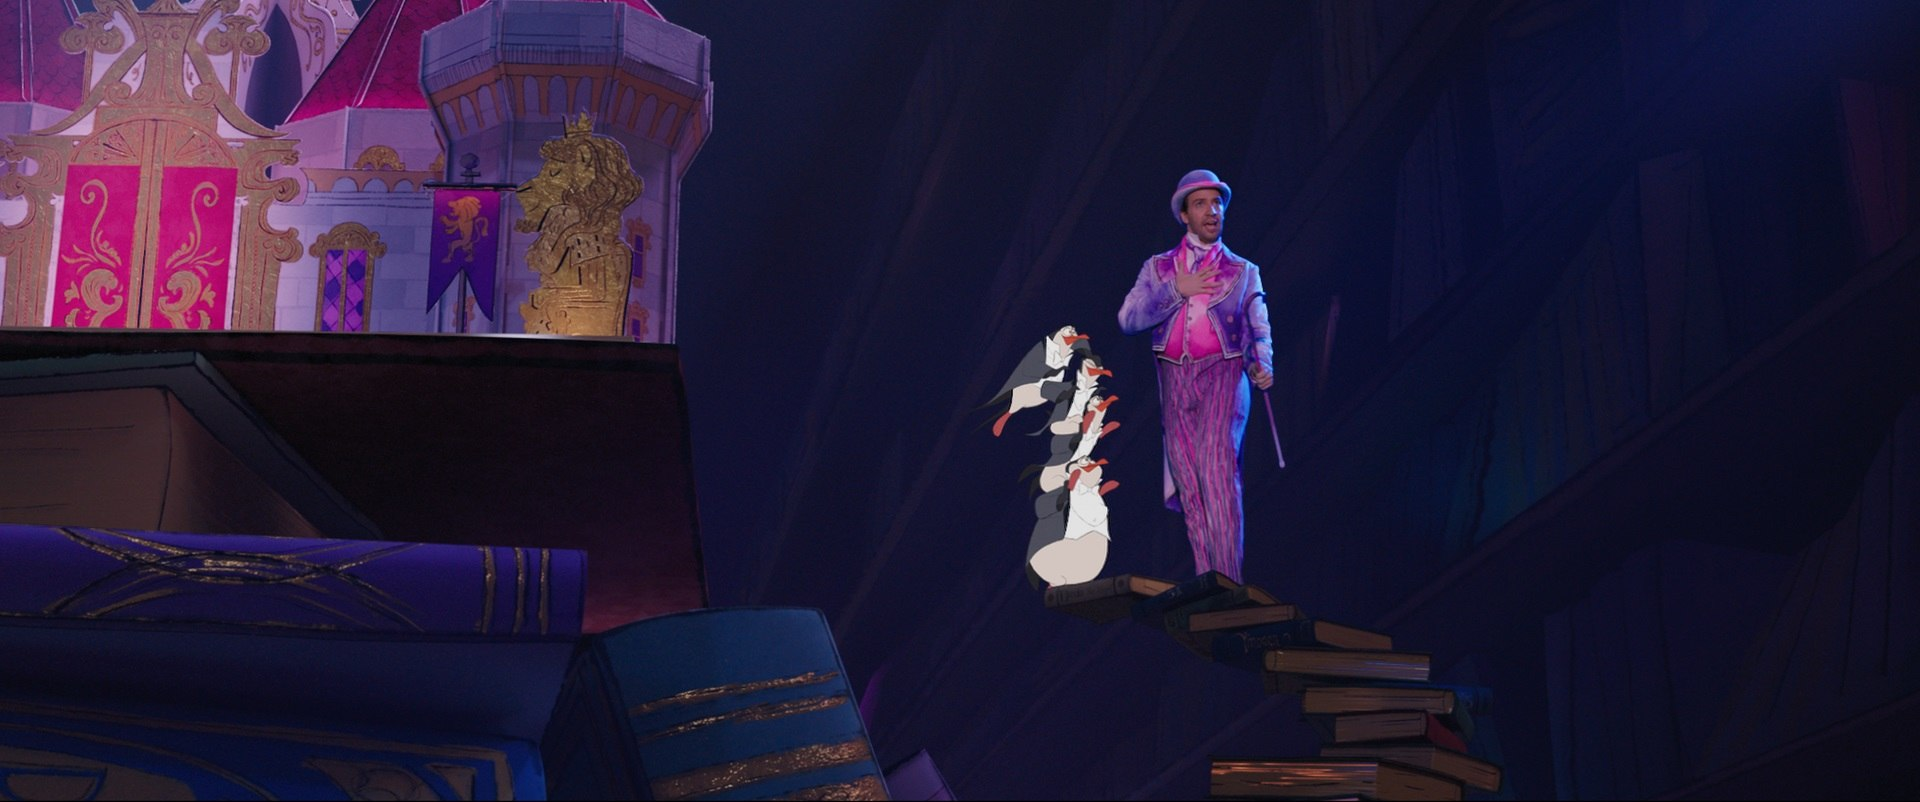 Animated Characters Abound In Mary Poppins Returns Animation World Network